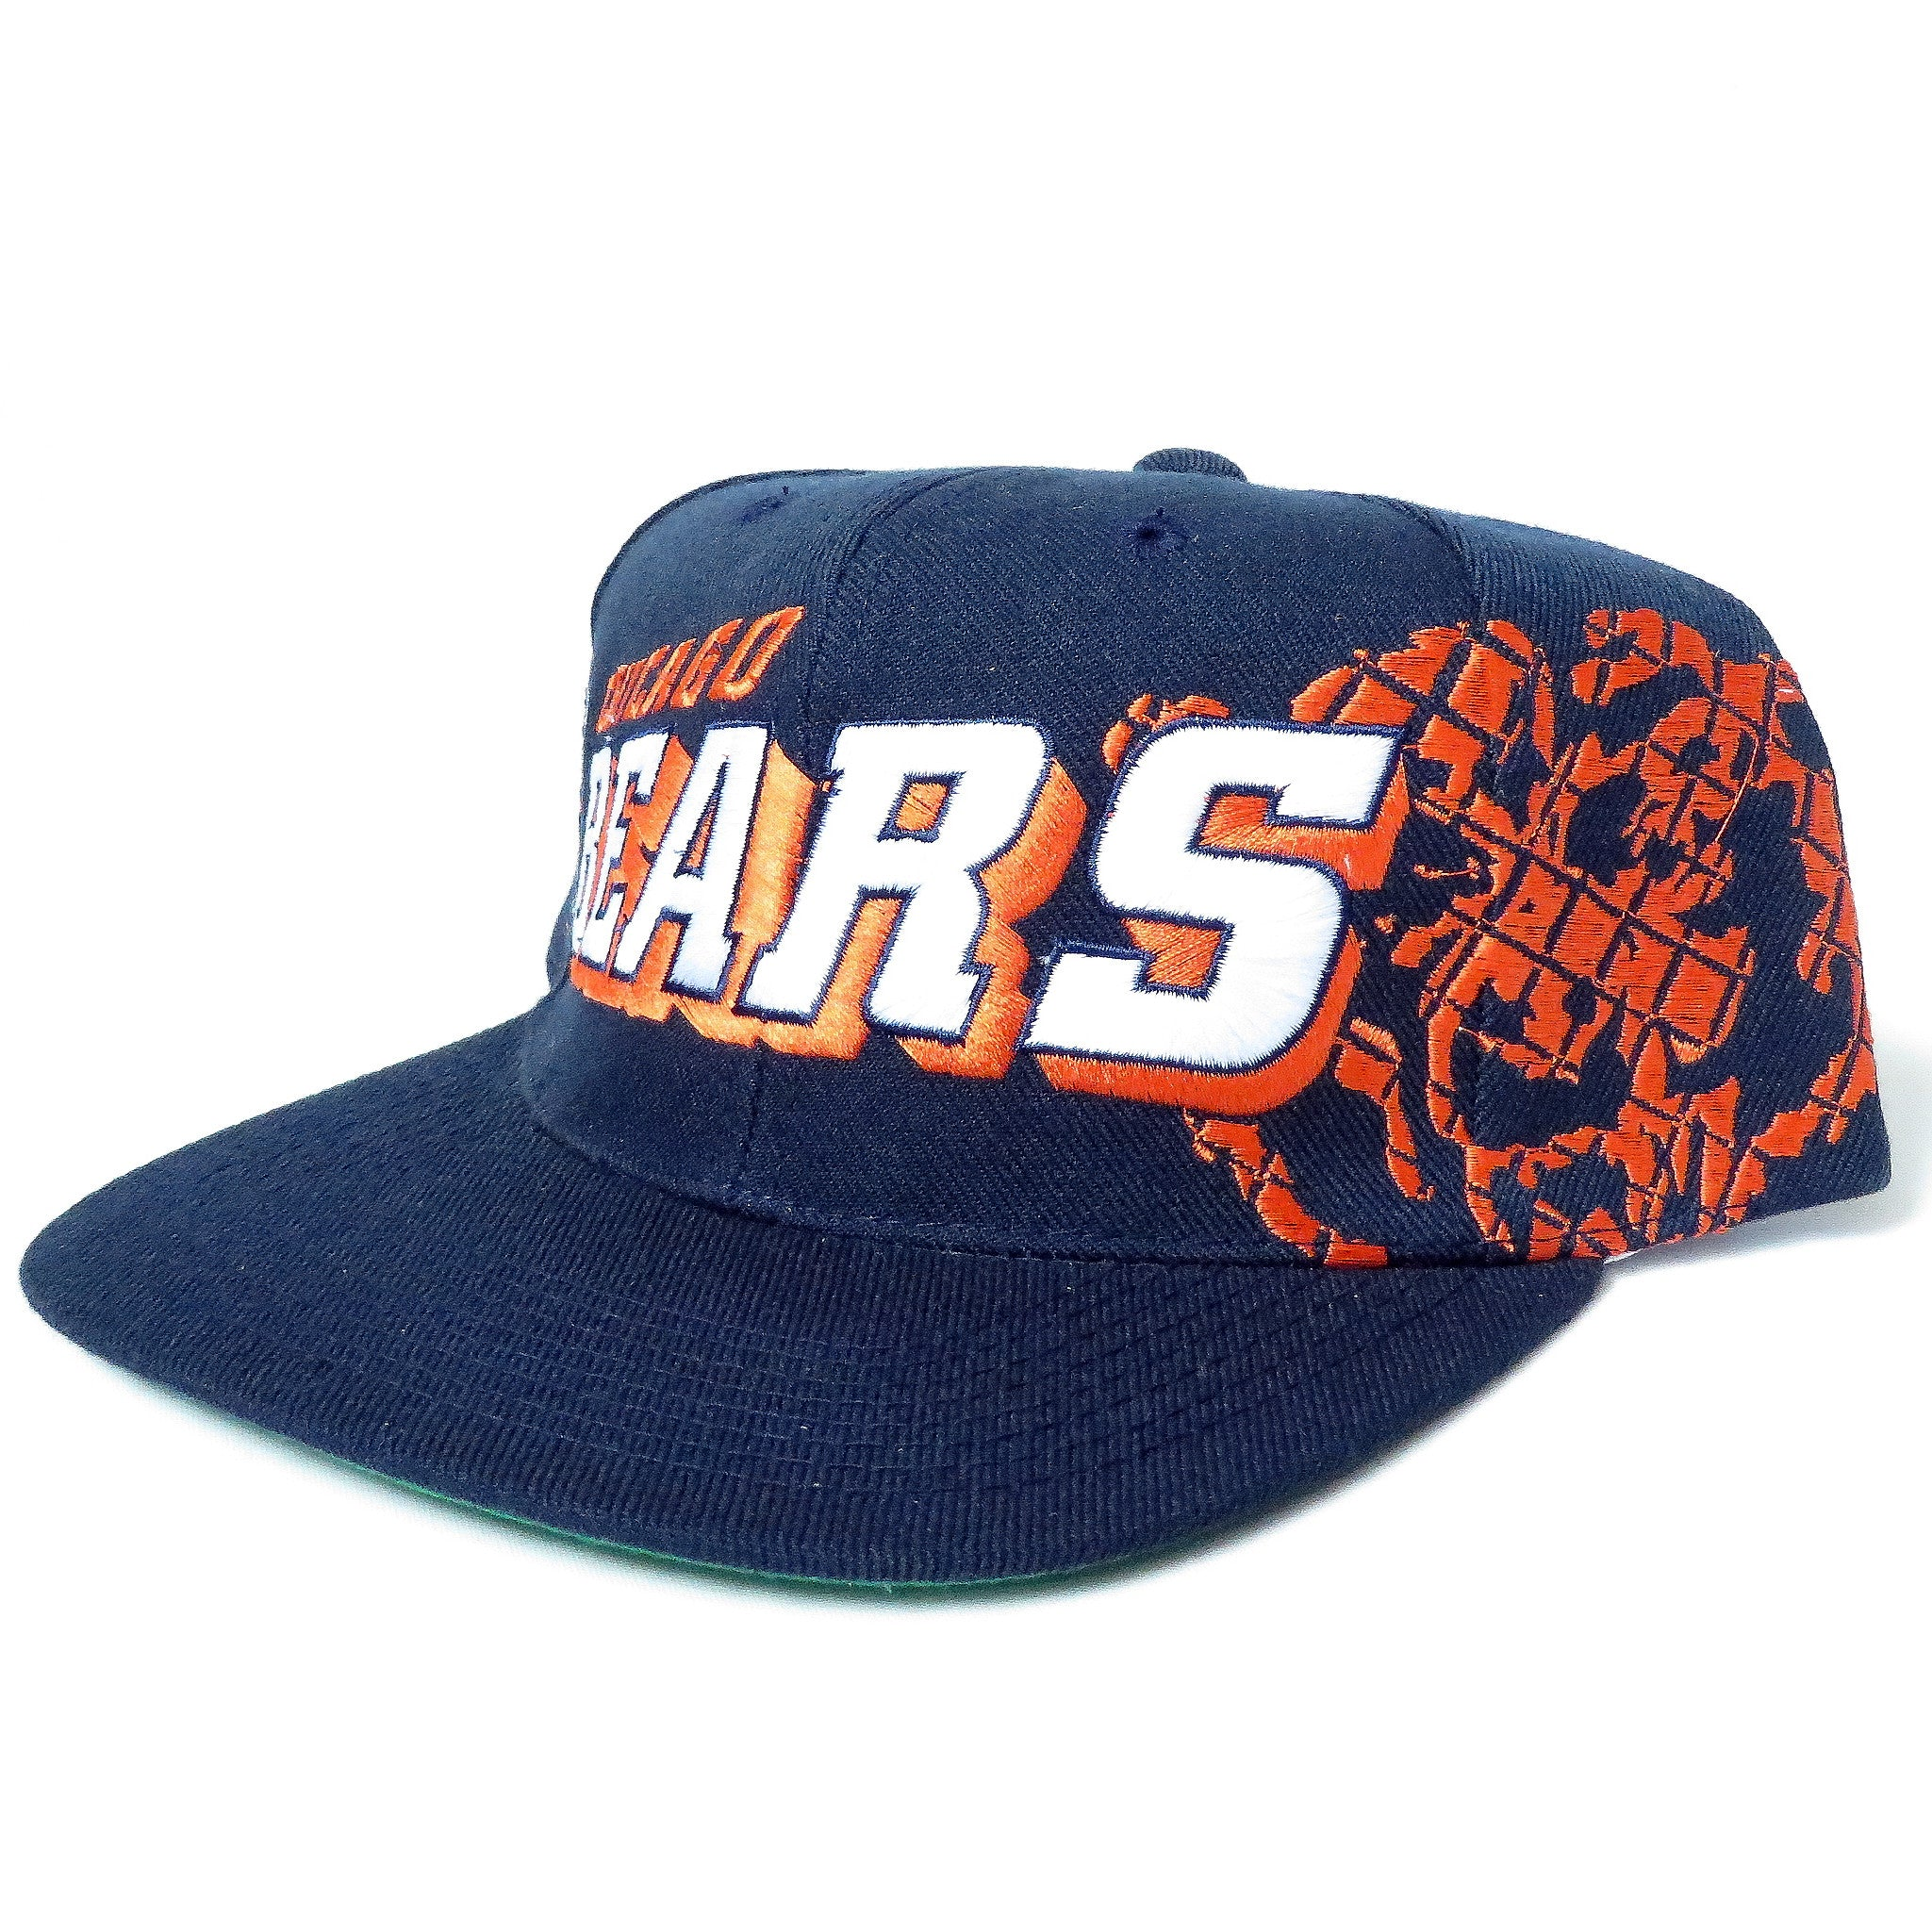 Vintage Chicago Bears Sports Specialties Snapback Hat